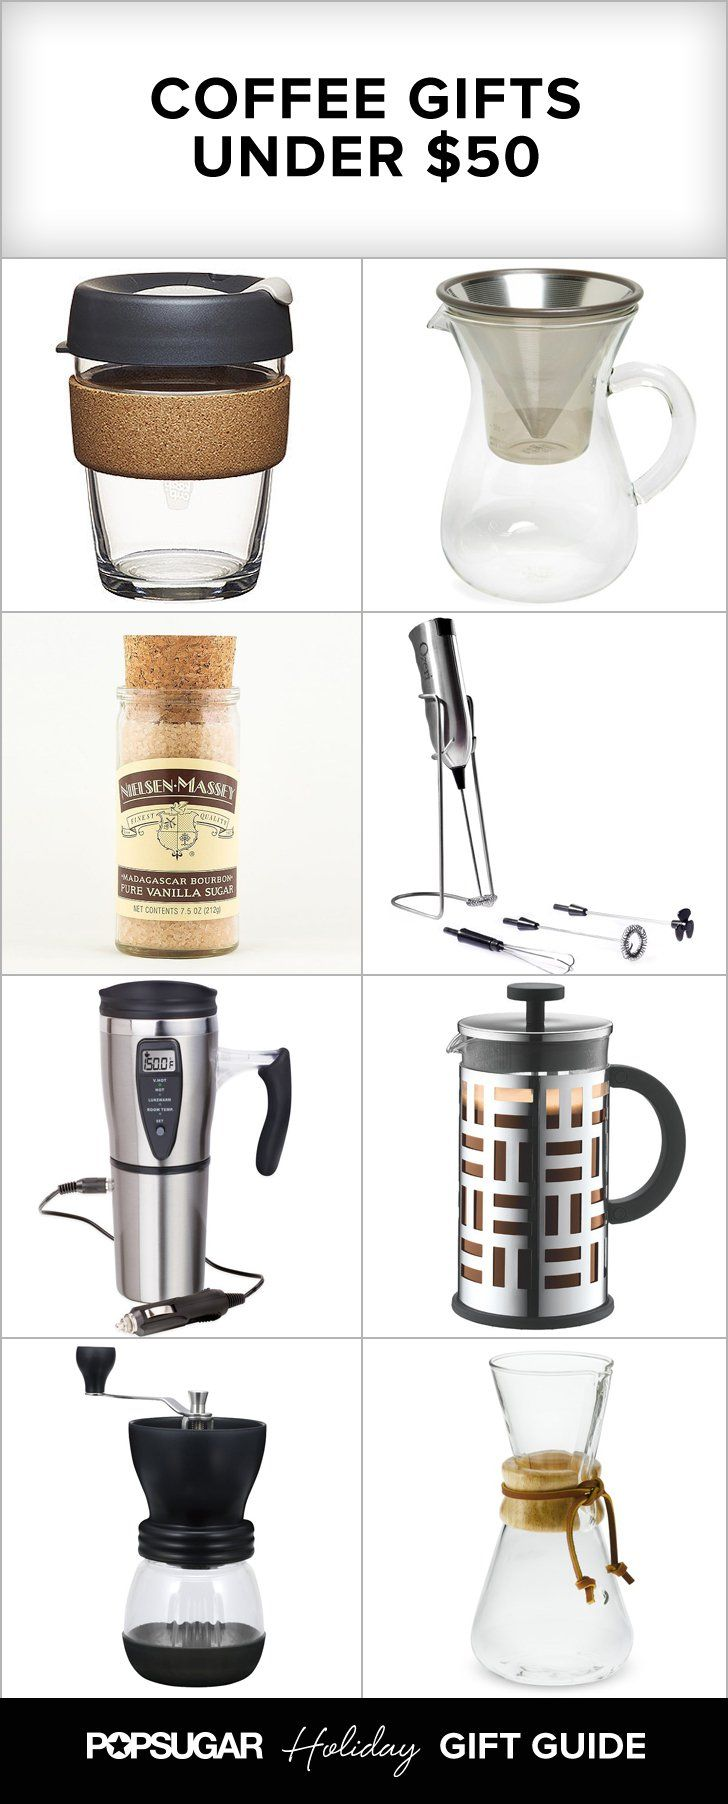 Gifts for coffee-lovers under $50!                                                                                                                                                                                 More